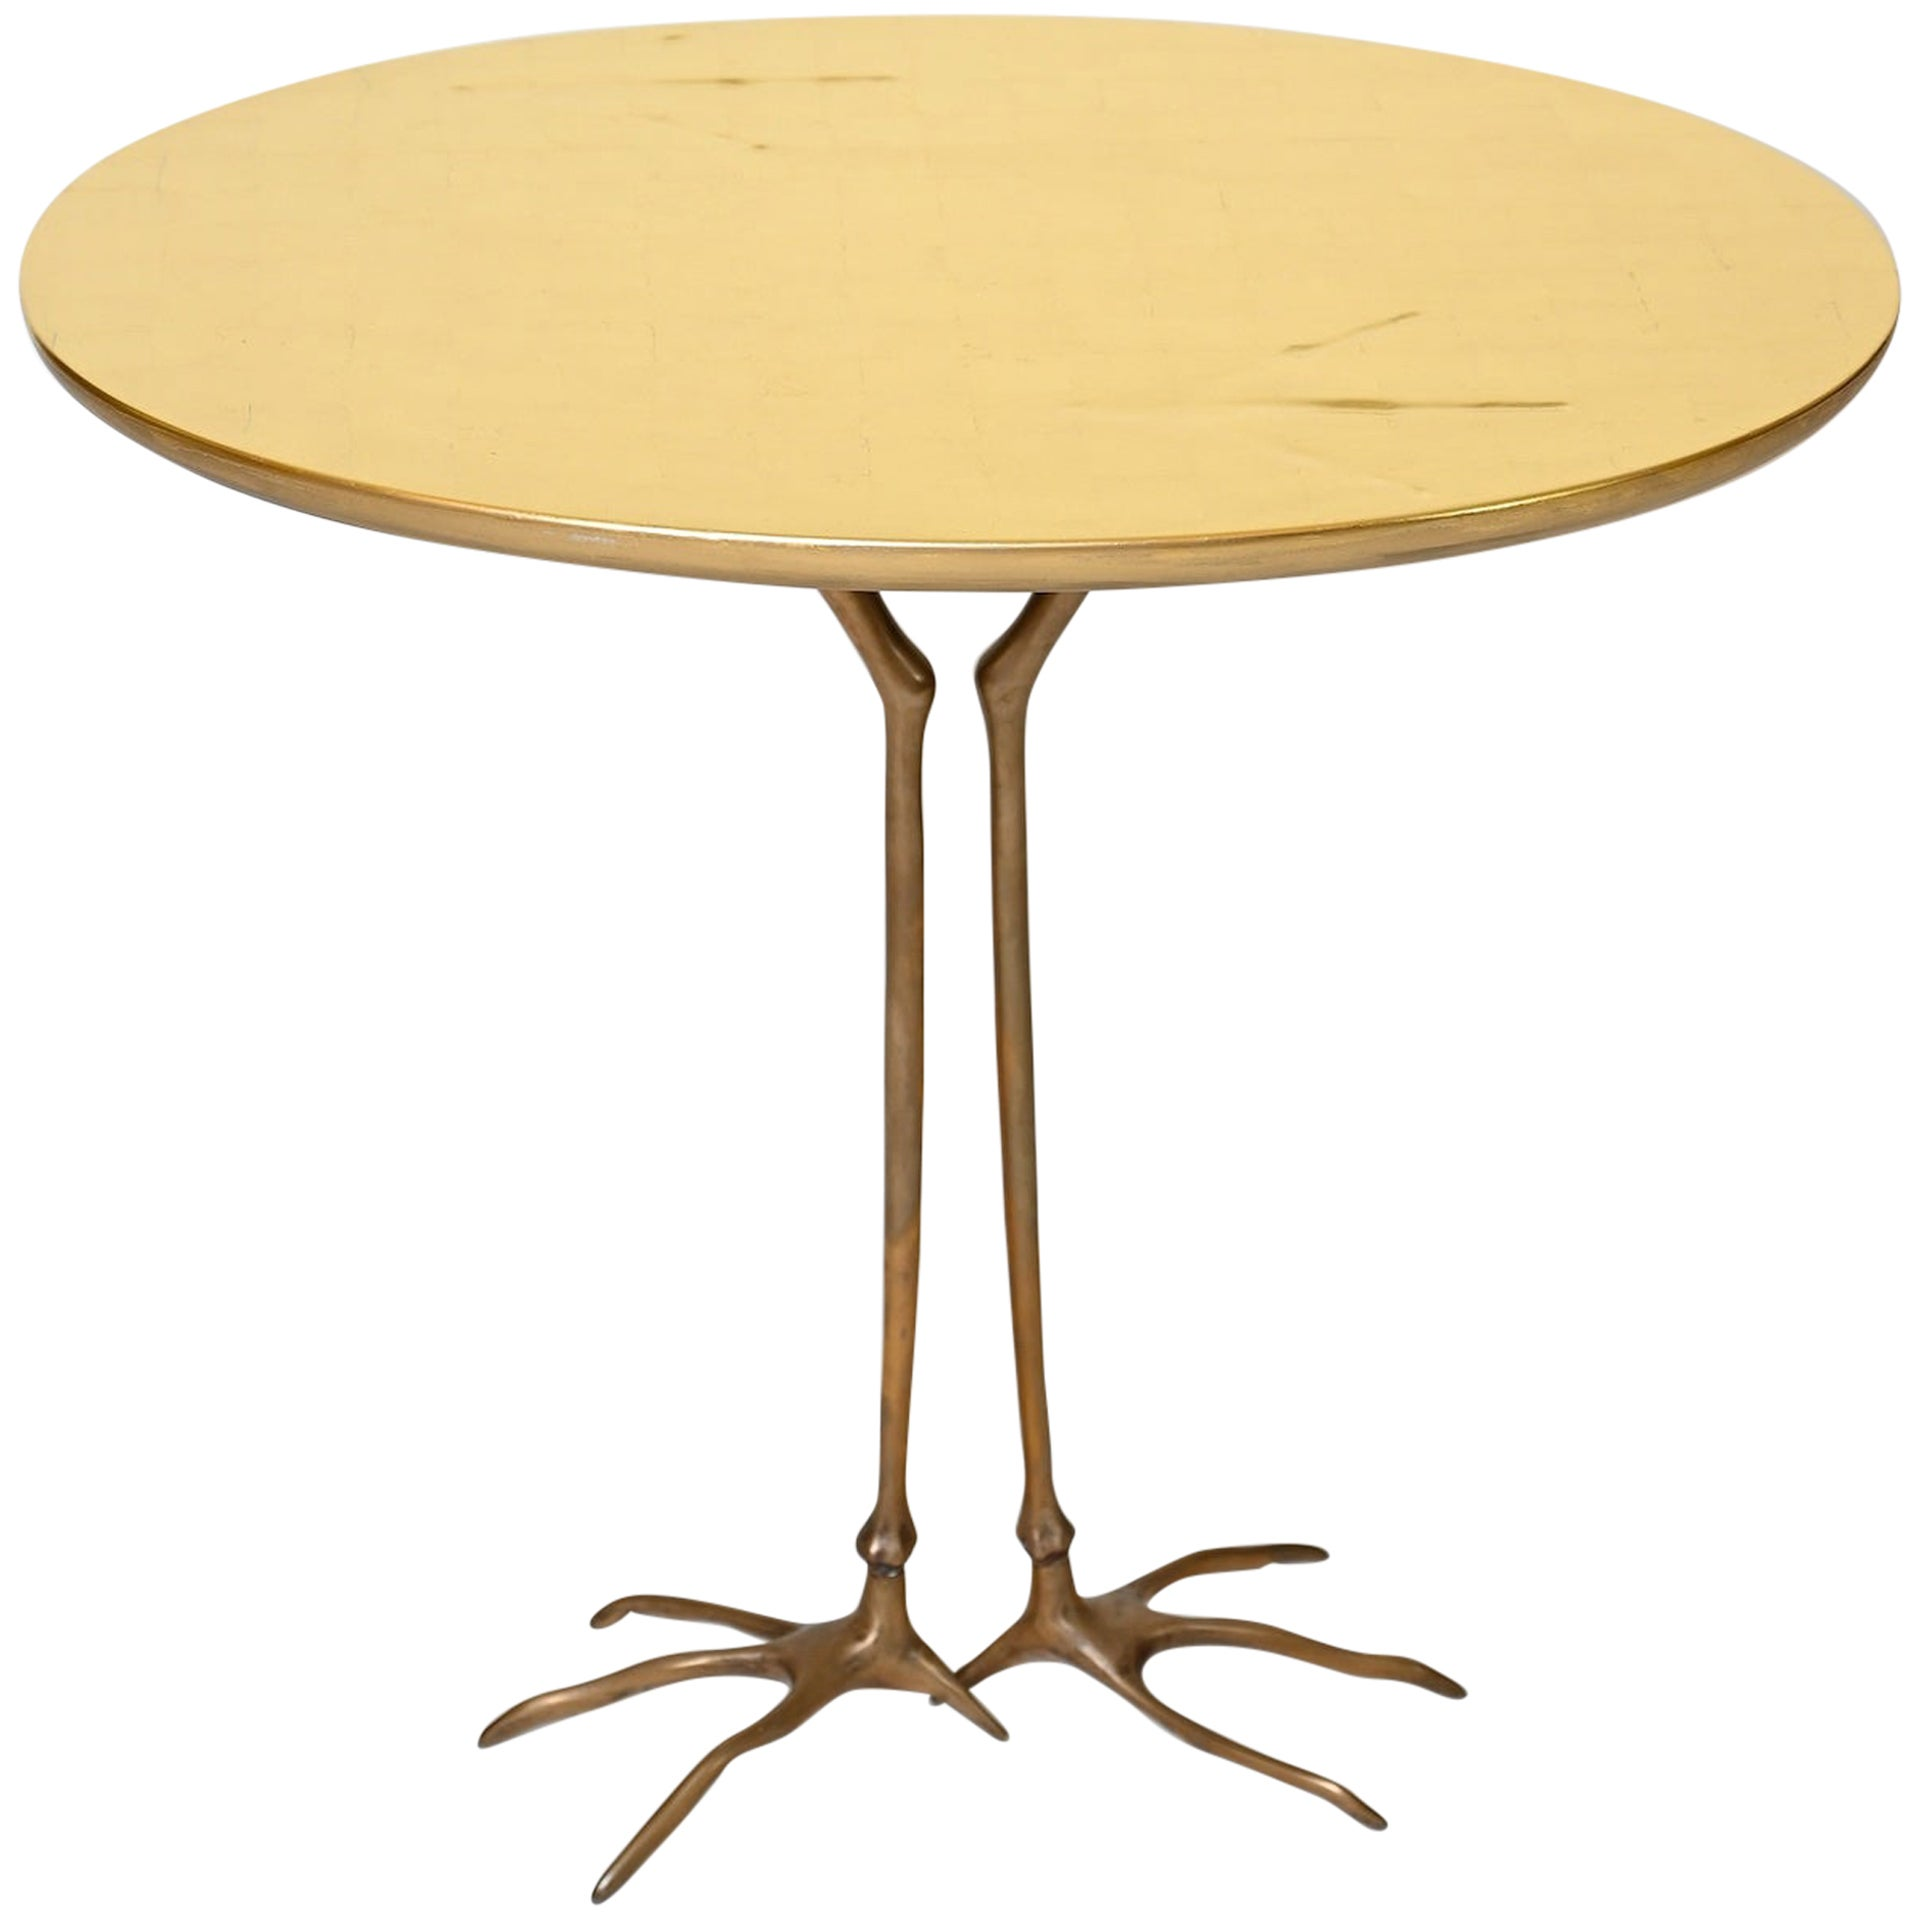 Gold Leaf 'Traccia' Table by Meret Oppenheim